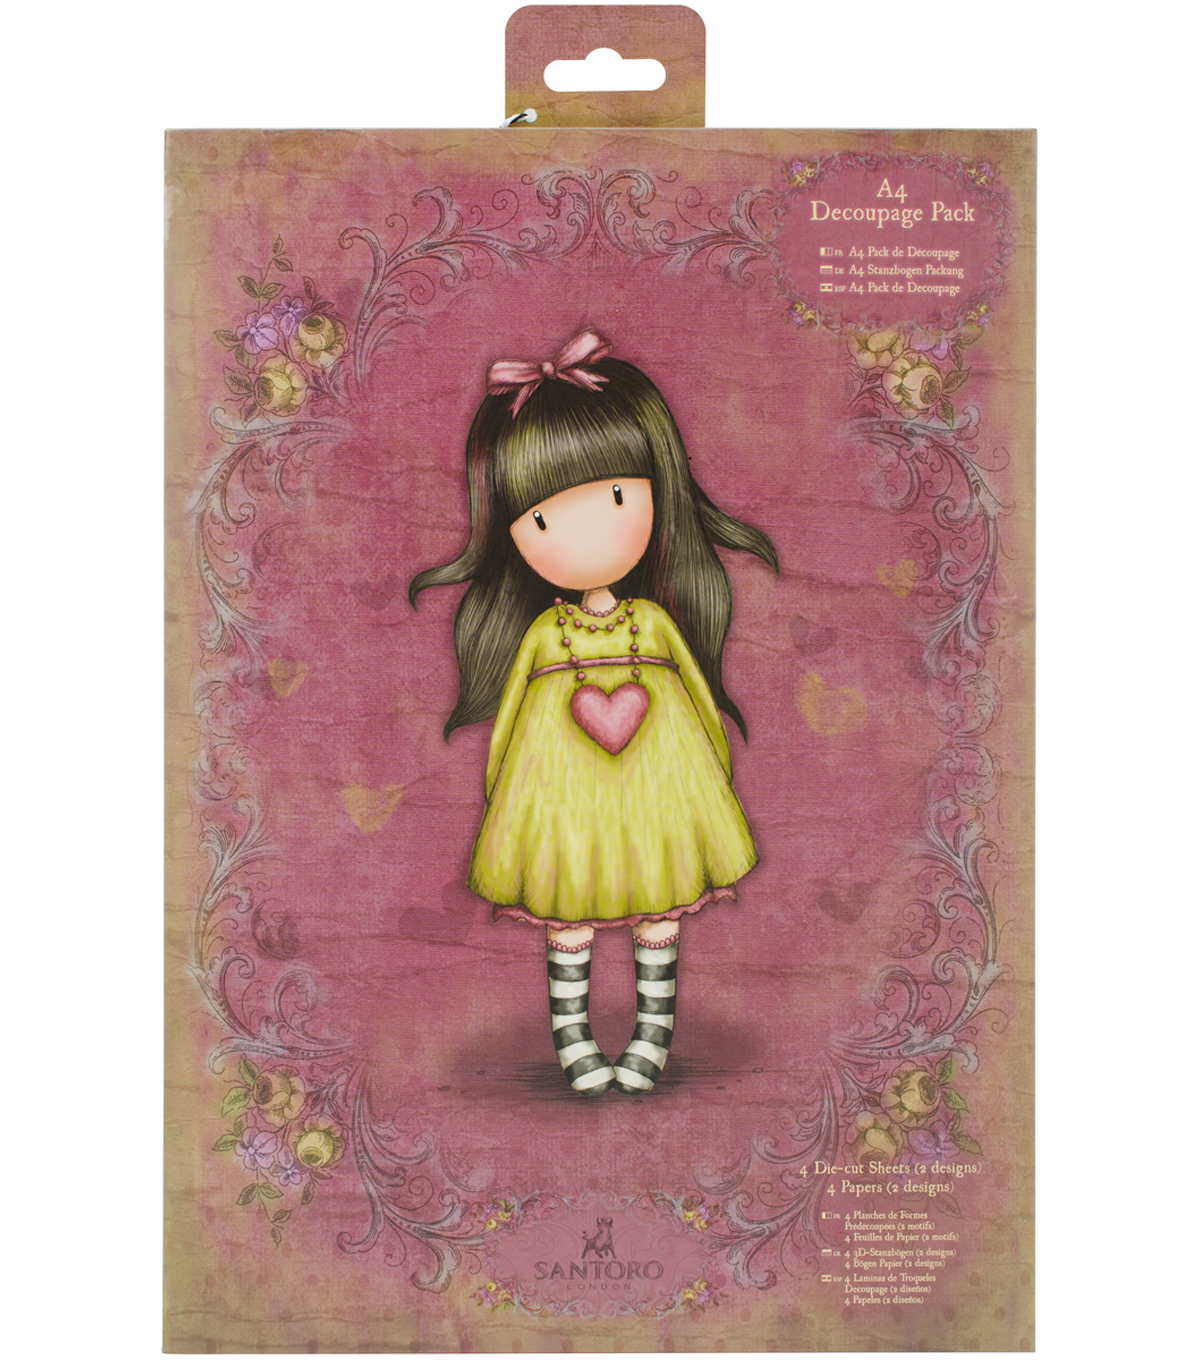 Santoro Gorjuss A4 Decoupage Pack-Heartfelt